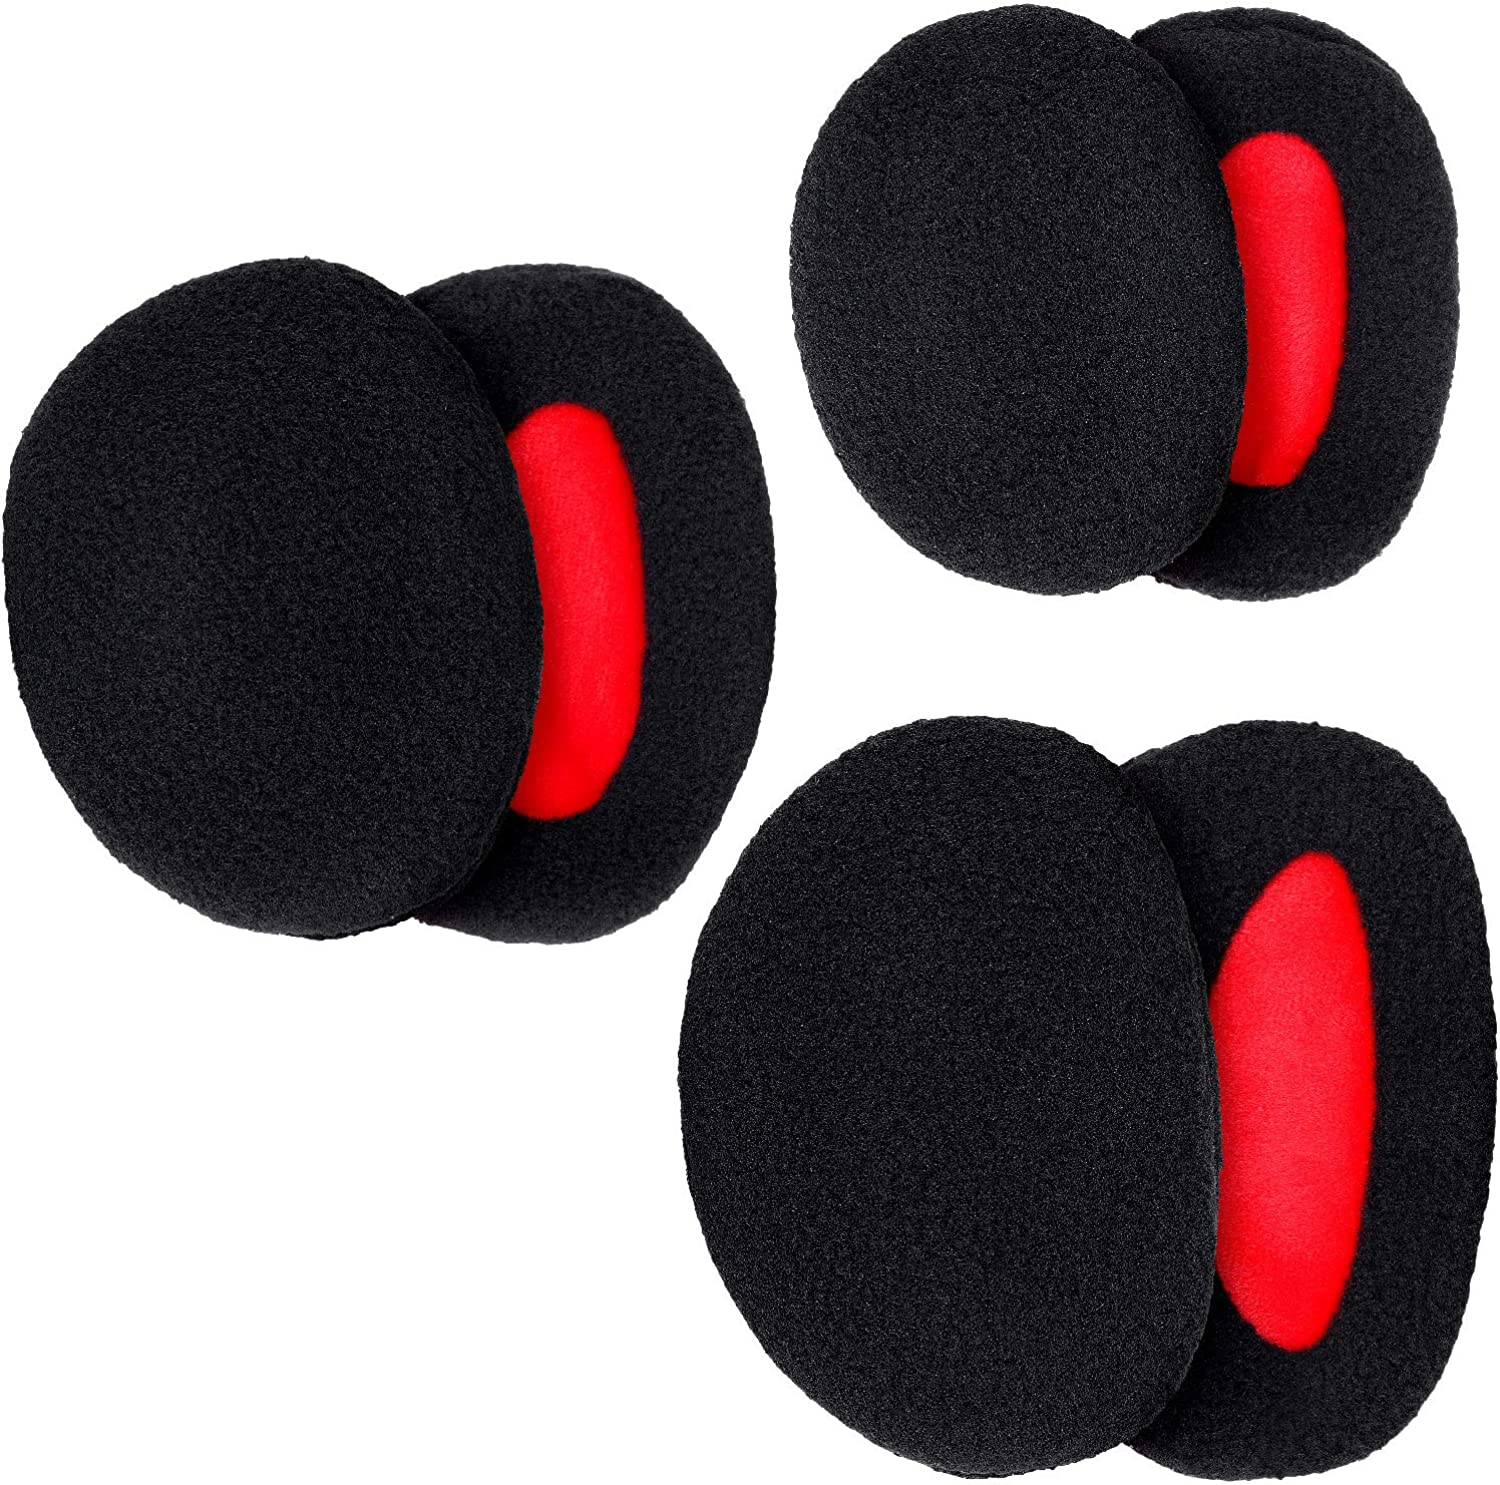 3 Pairs Bandless Ear Muffs Warmers Fleece Ear Muffs Winter Ear Covers for Men Christmas Valentine's Day Giving